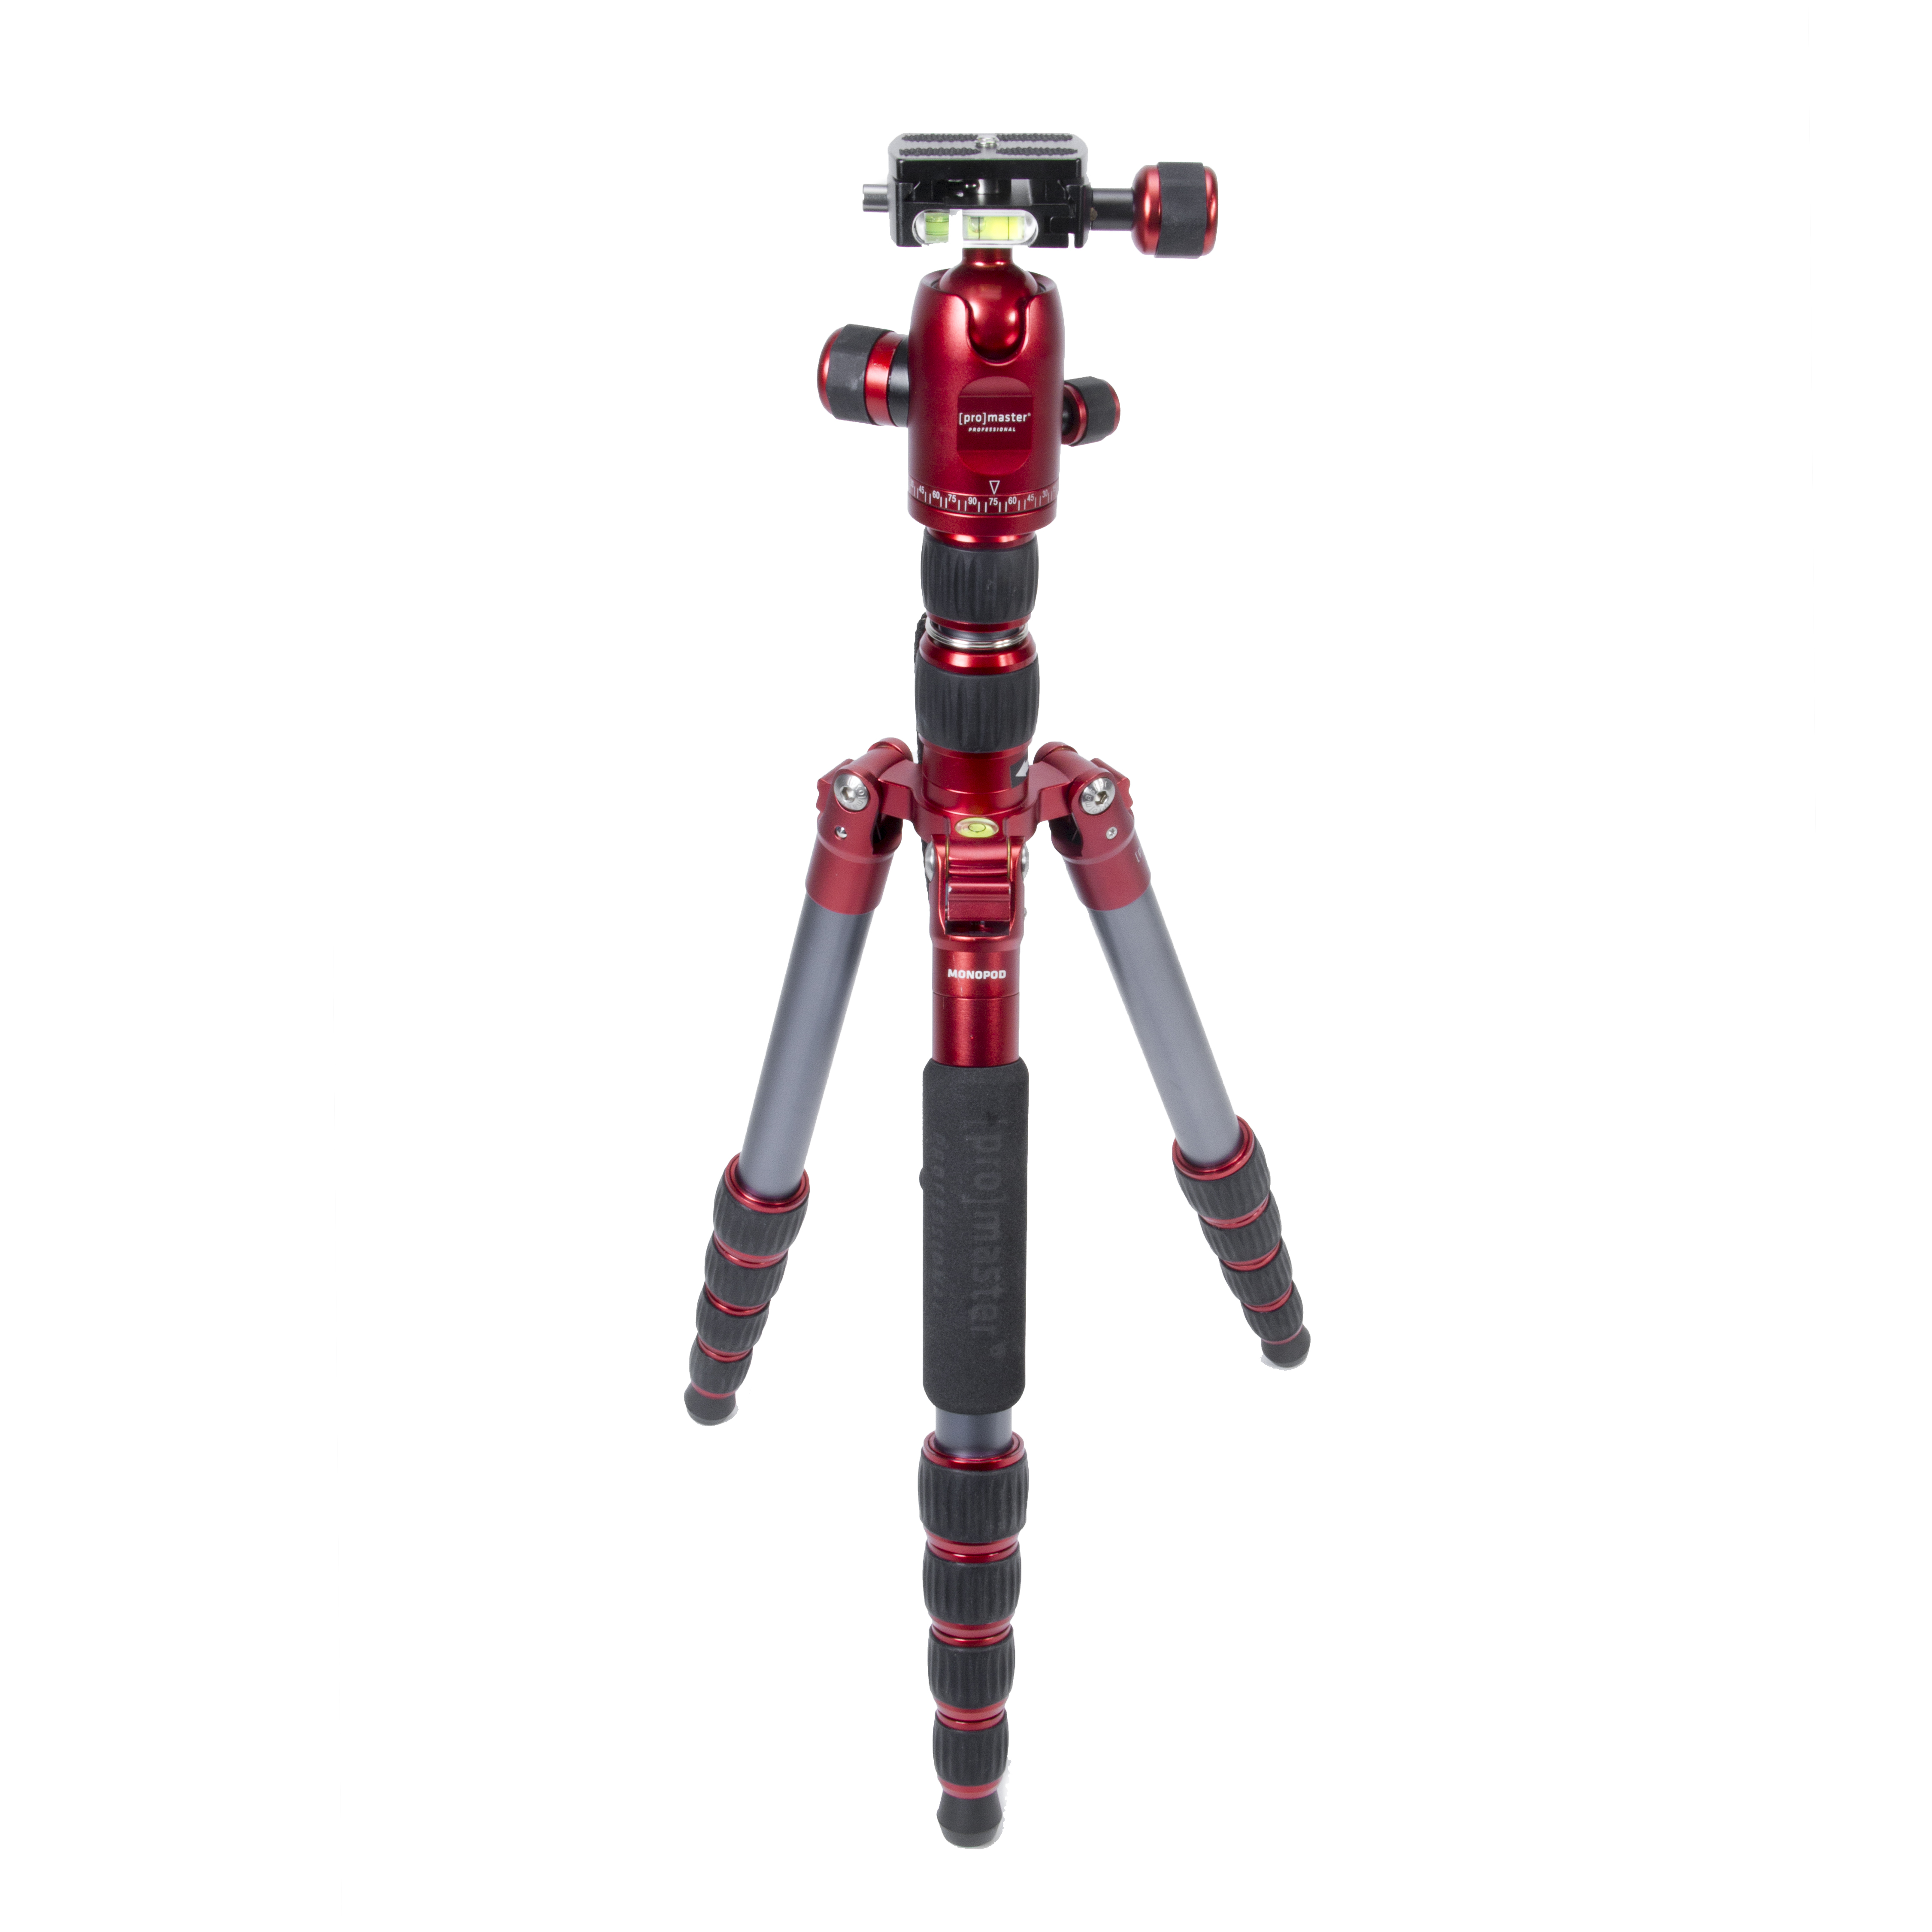 Promaster 2682 XC522 Tripod - Red